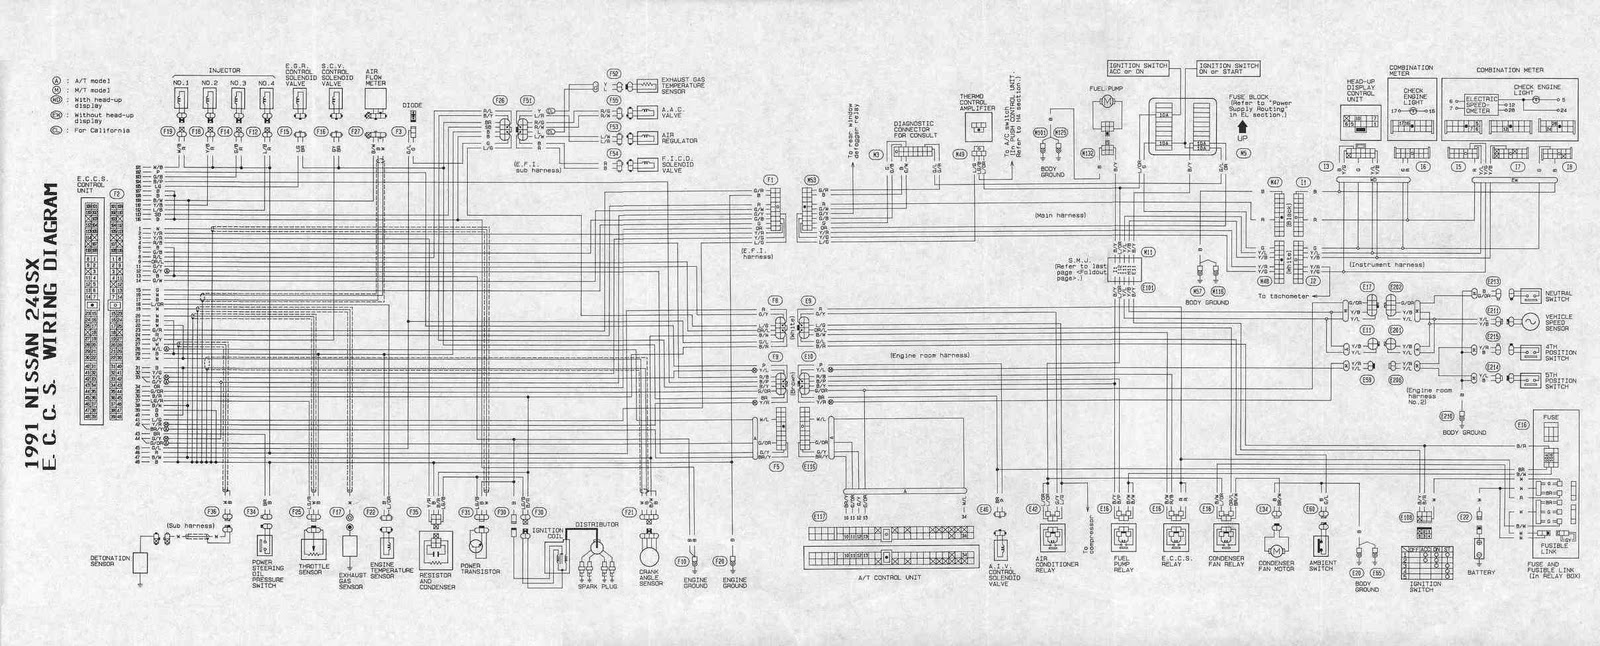 DIAGRAM] 97 Nissan 240sx Wiring Diagram FULL Version HD Quality Wiring  Diagram - DIAGRAMACION.GLAUCOMANET.ITGlaucomanet.it